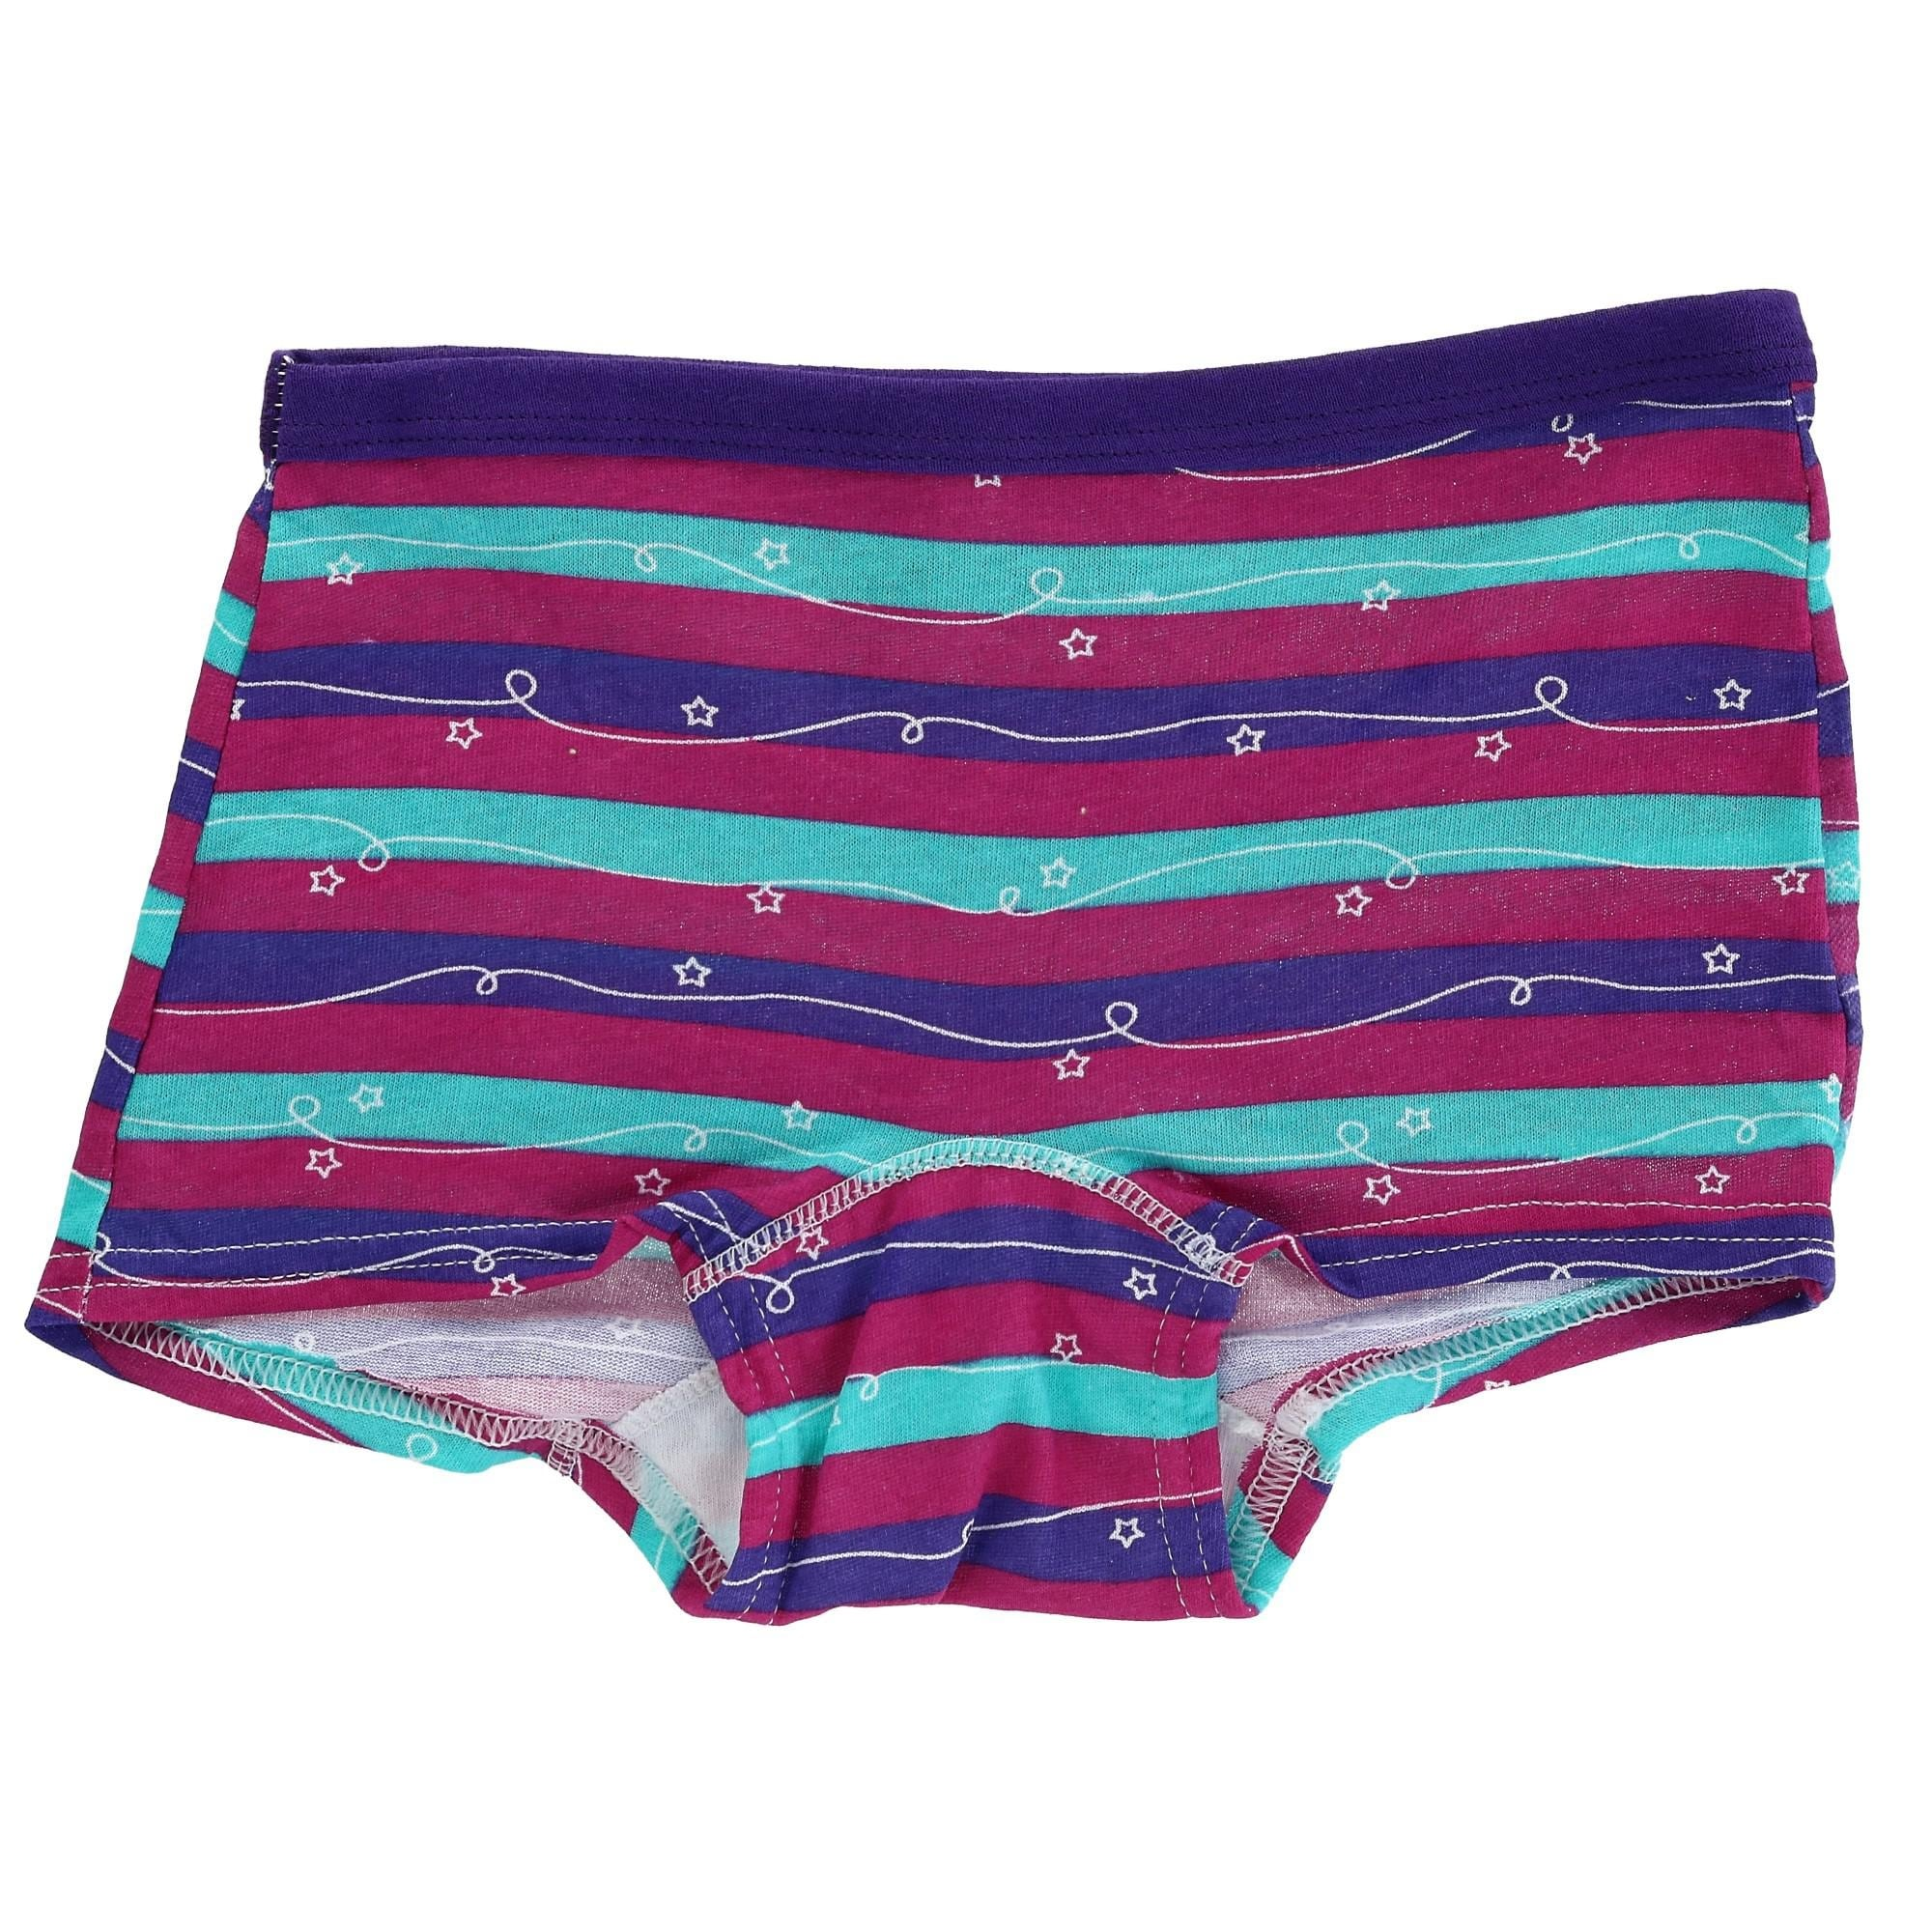 New in Original Package Fruit of The Loom Girl/'s Boy Shorts Size 4 Pack of 8